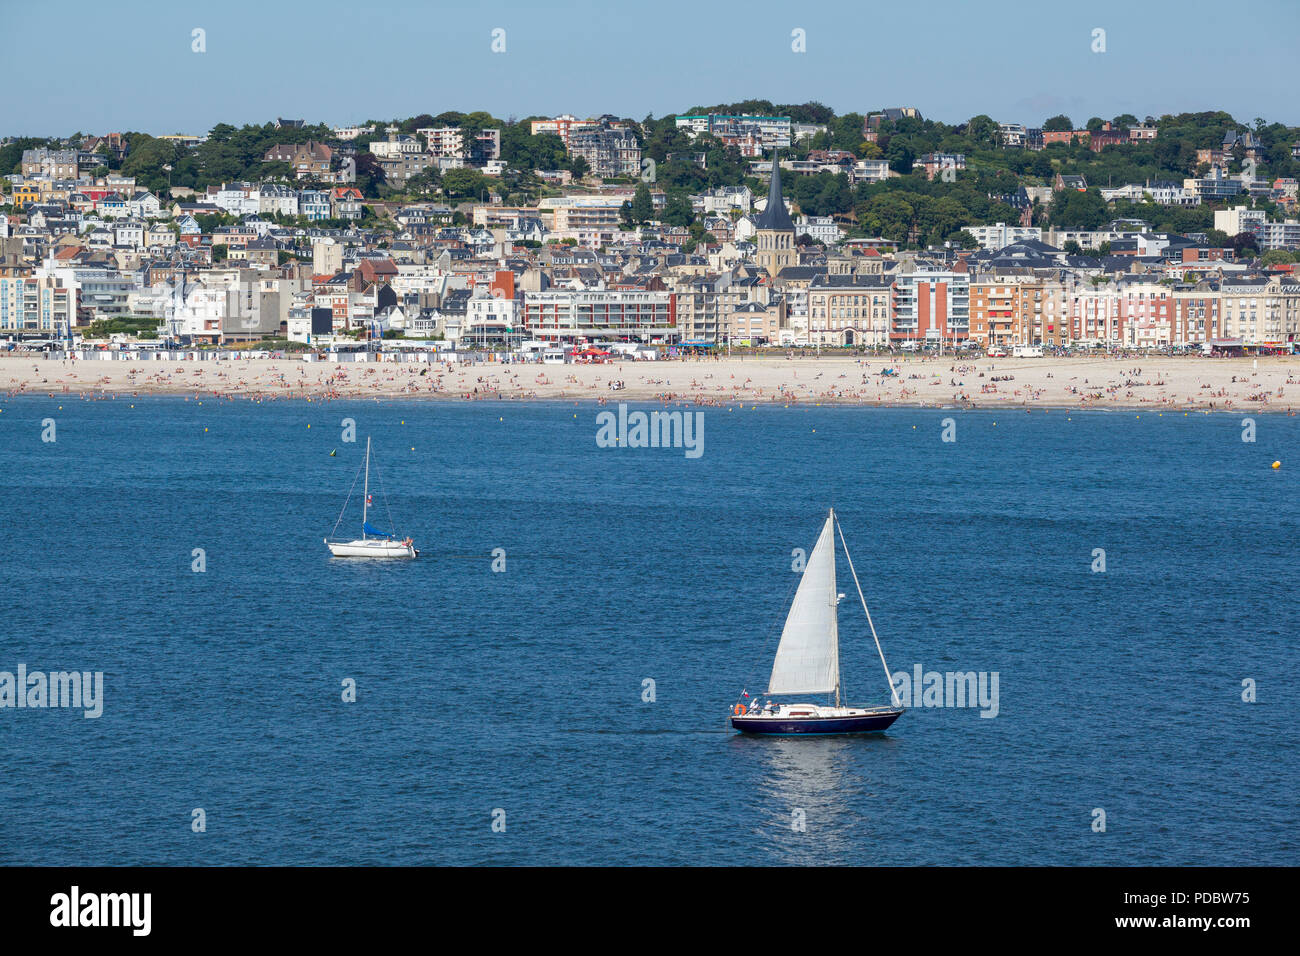 A view from the sea showing sailing boats in front of the beach at Sainte Adresse, Le Havre, Normandy, France - Stock Image